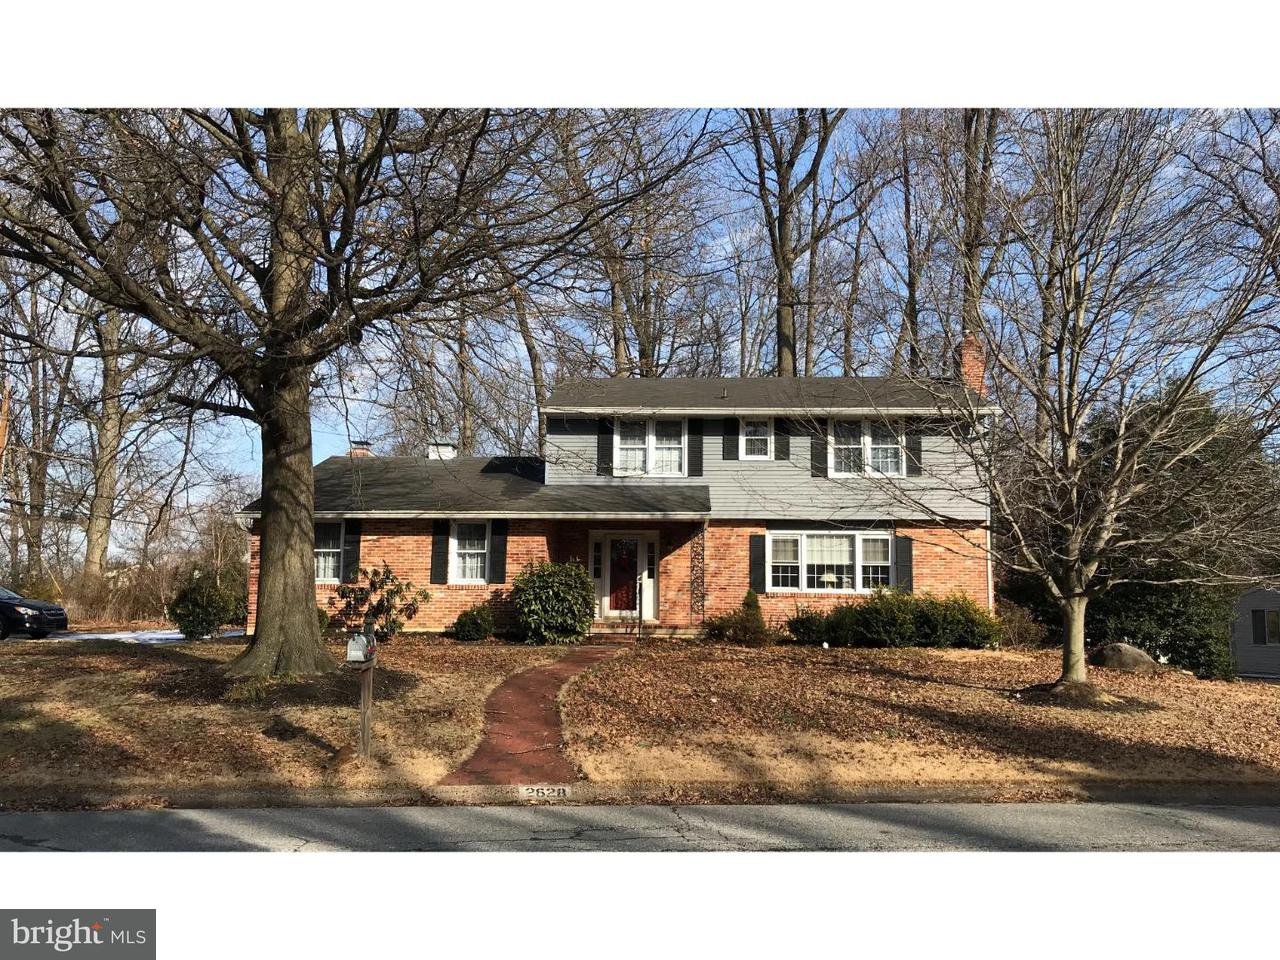 Single Family Home for Sale at 2628 MAJESTIC Drive Talleyville, Delaware 19810 United States